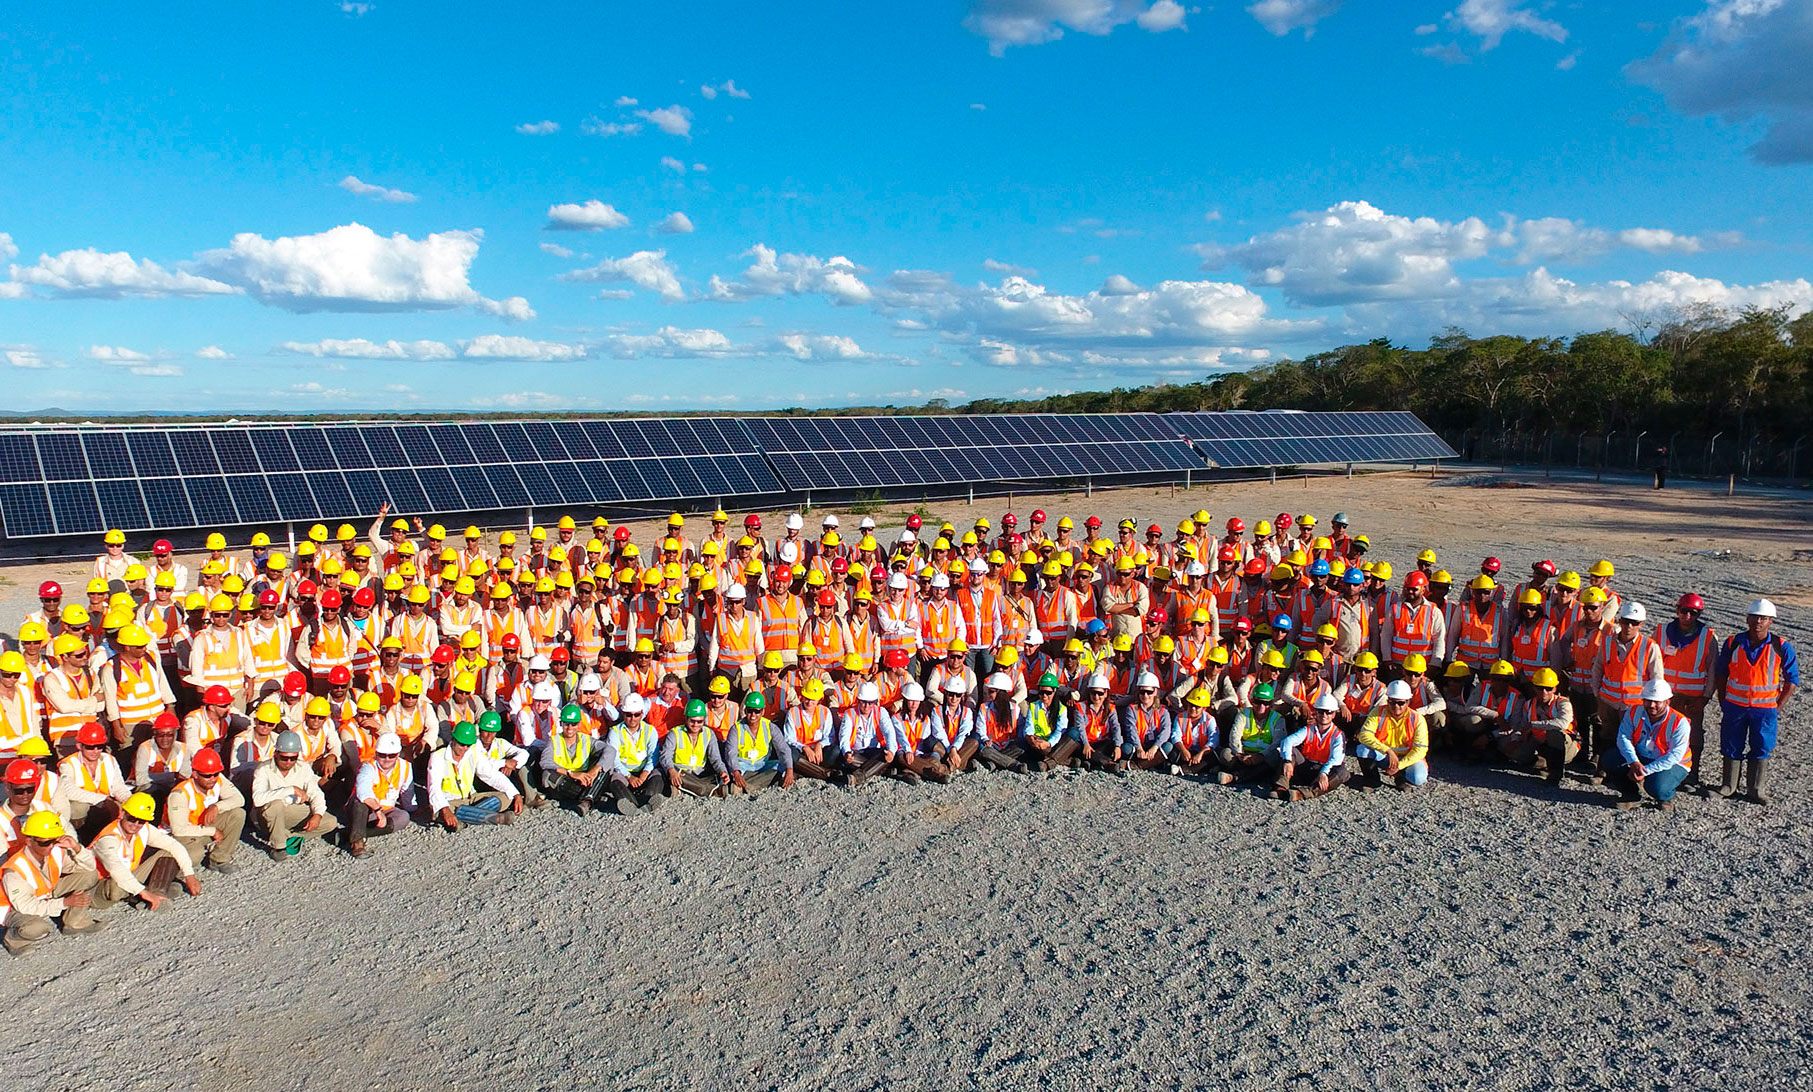 Join Soltec Team Brazil PV solar trackers